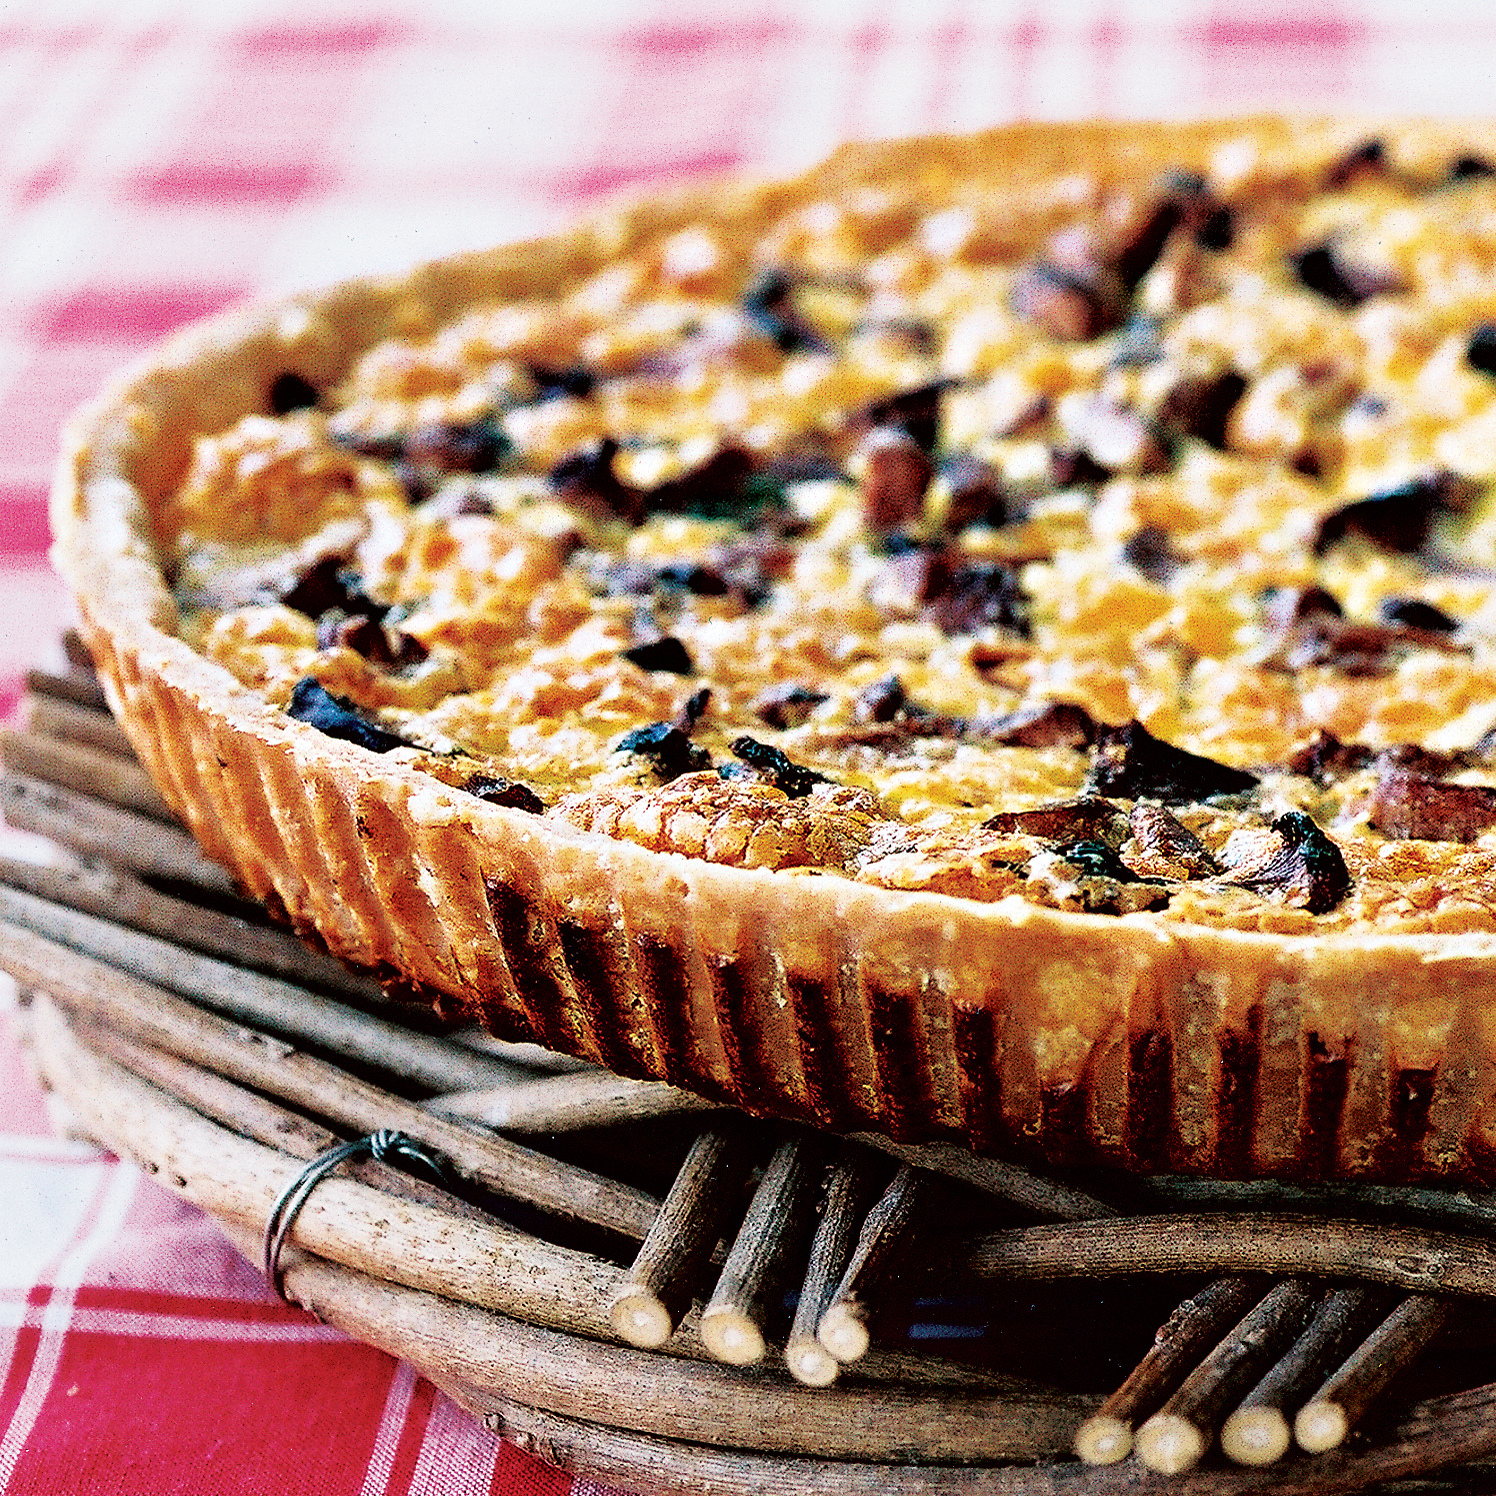 21 Favorite Brunch Recipes (Perfect for Easter!): Mushroom, Ham and Cheese Quiche